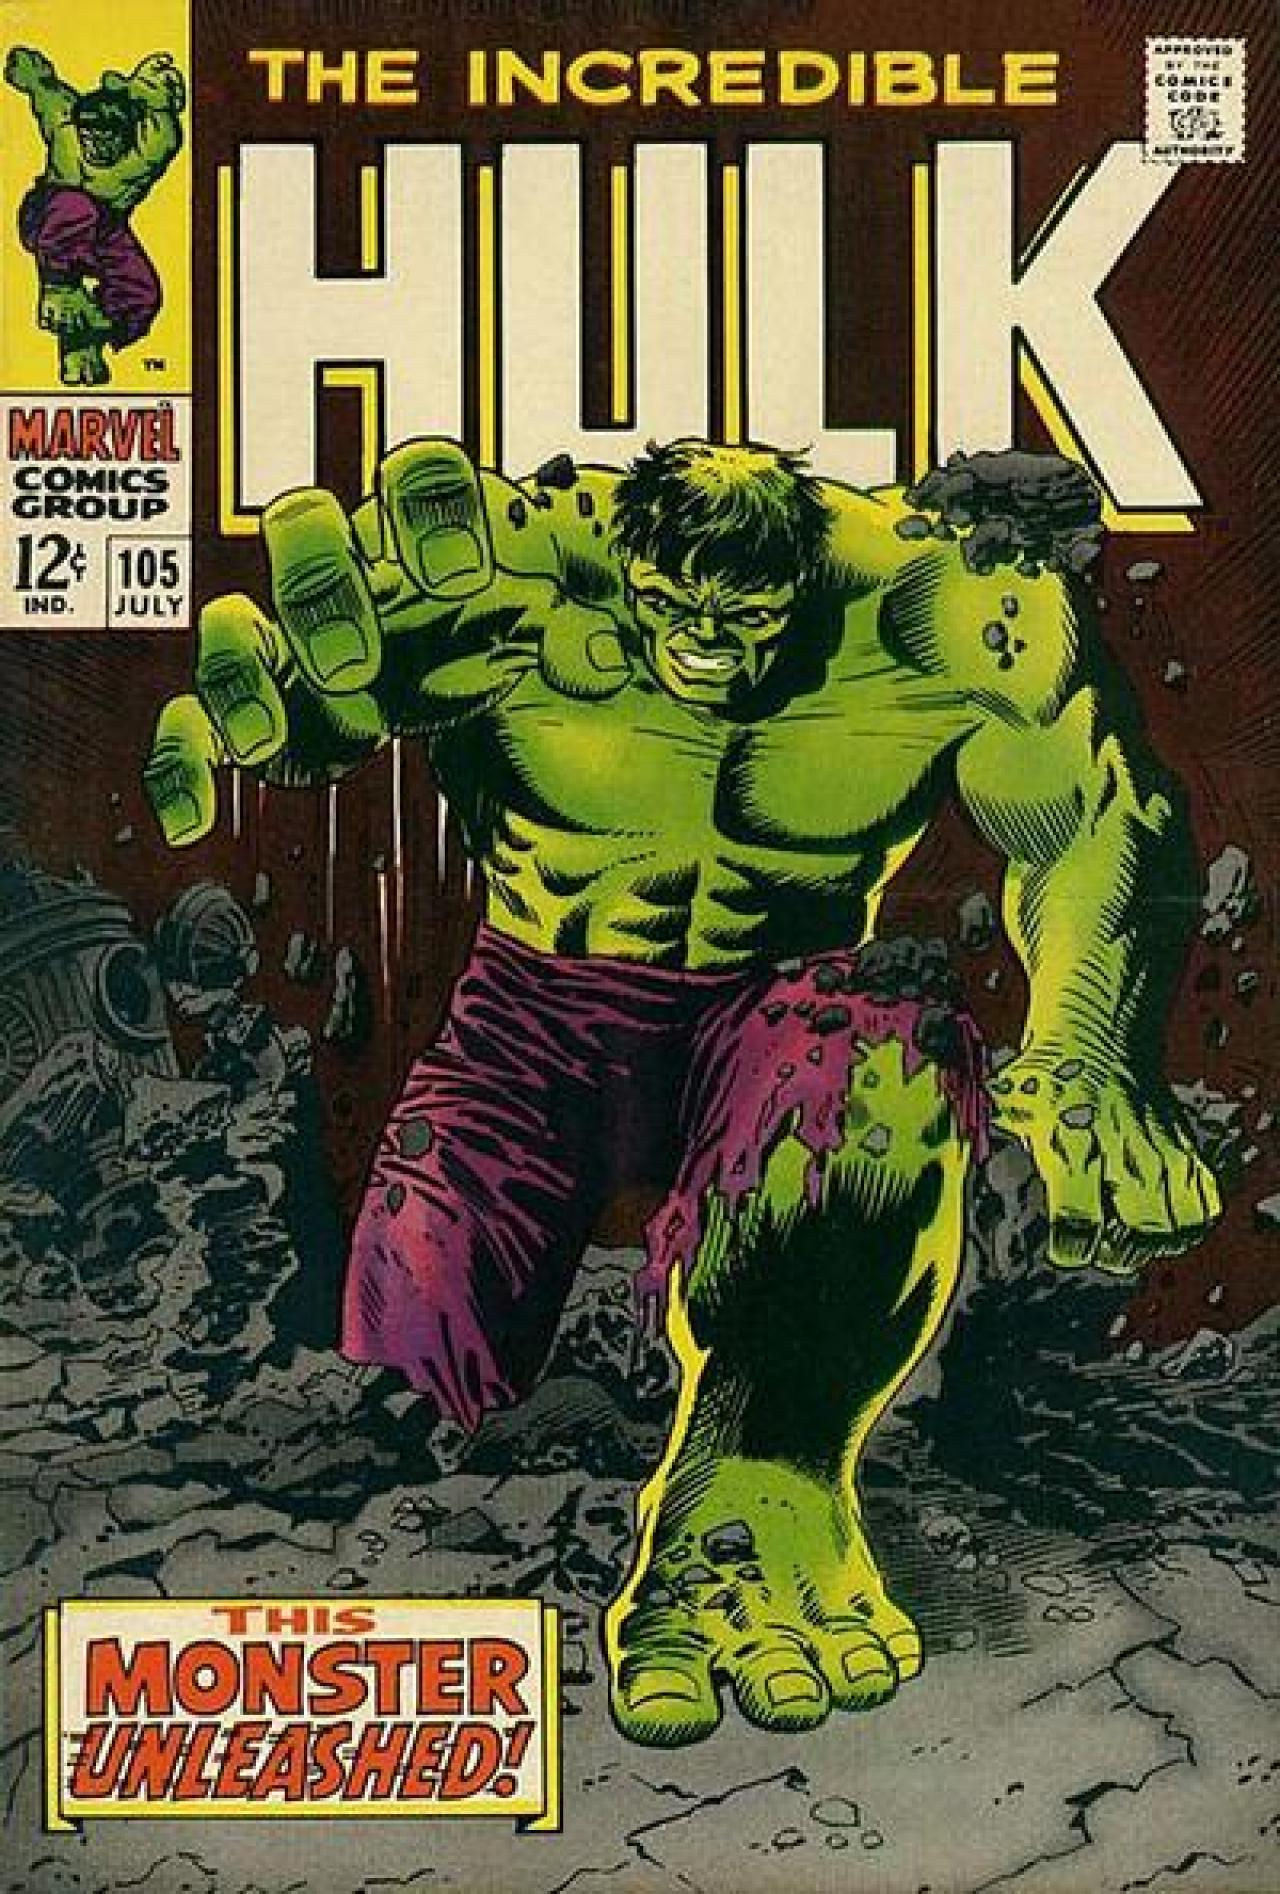 Smashingly Great Covers 50 Years Of Incredible Hulk Comics Syfy Wire